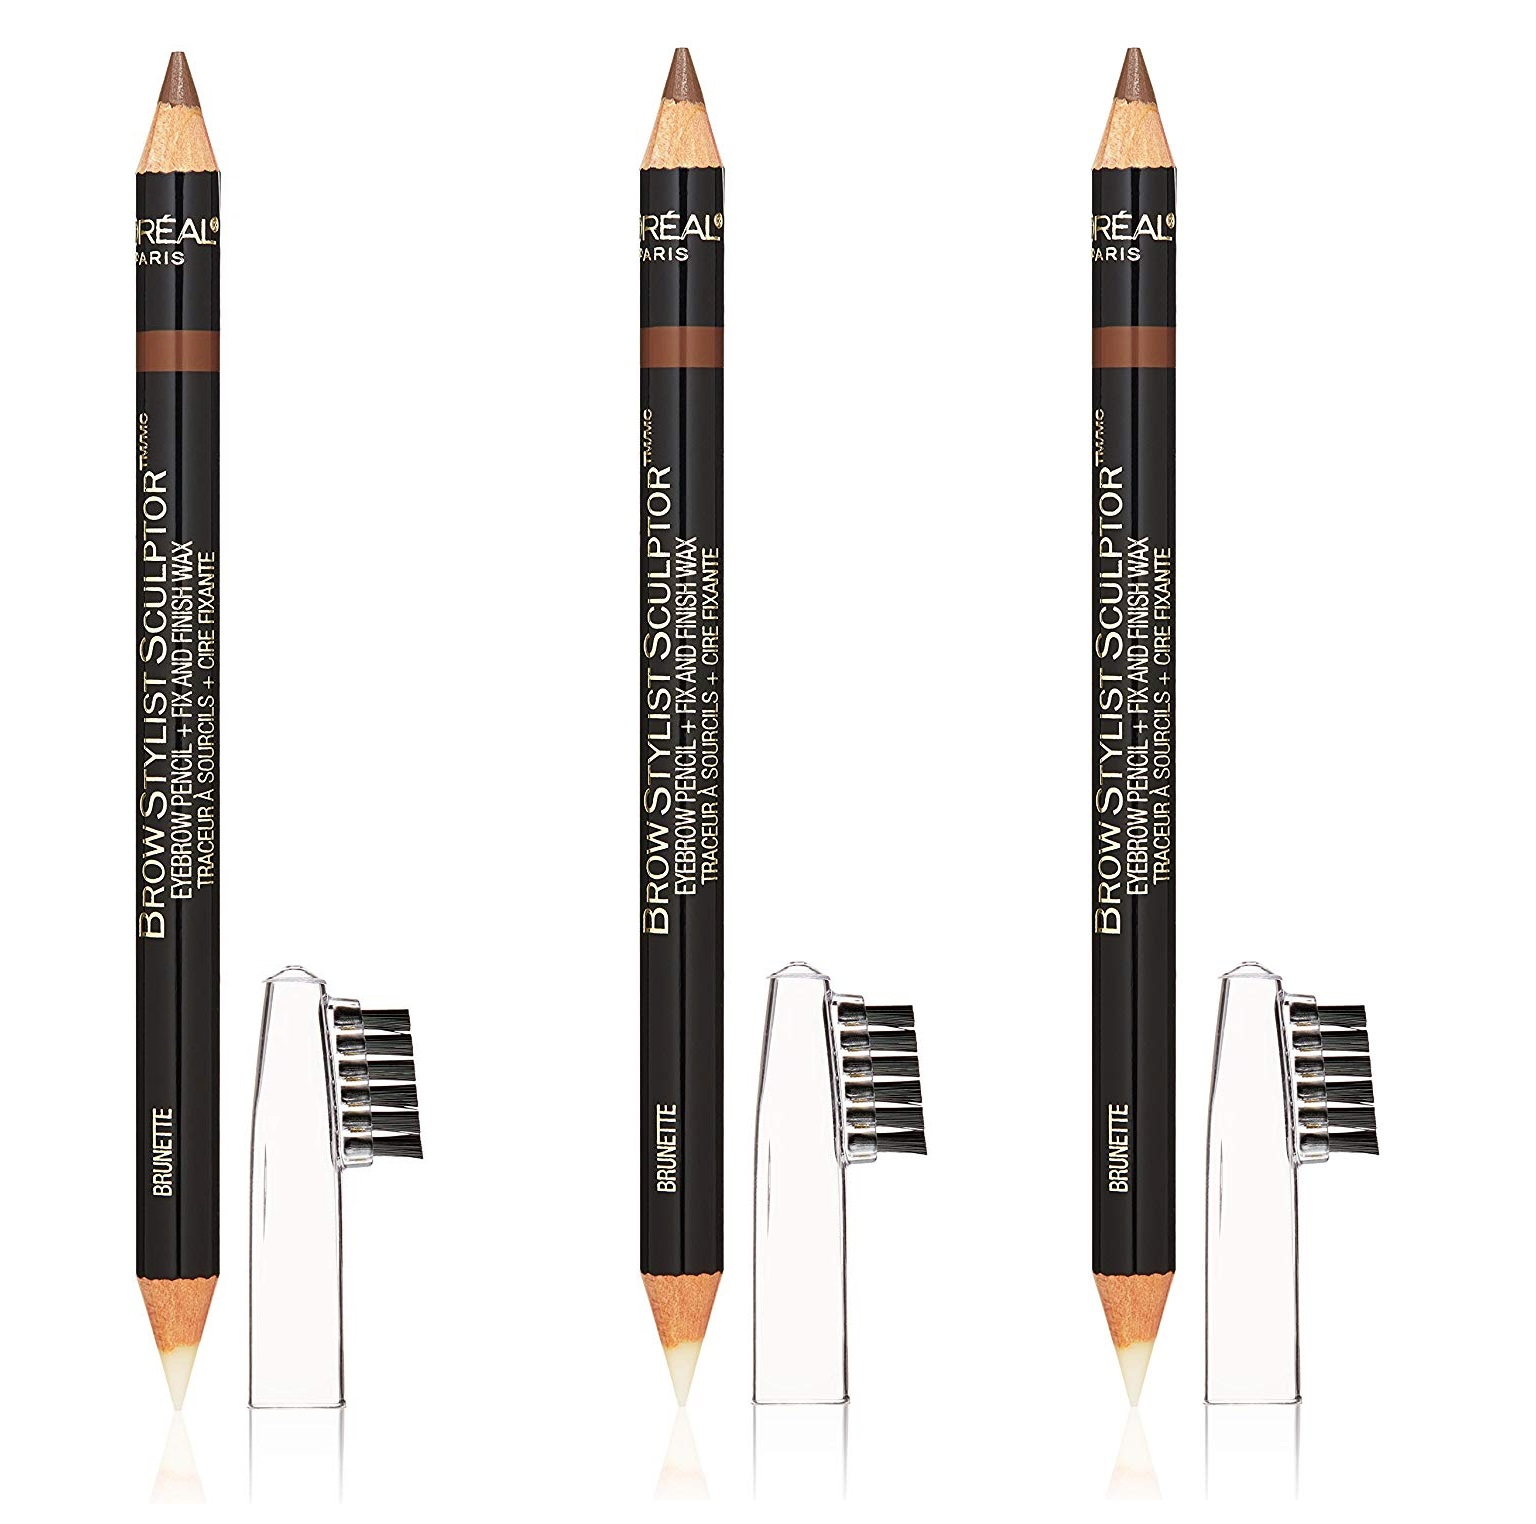 L'Oreal Brow Stylist Sculptor 3 in 1 Brow Tool/Liner, Dark Brunette #365 (Pack of 3)